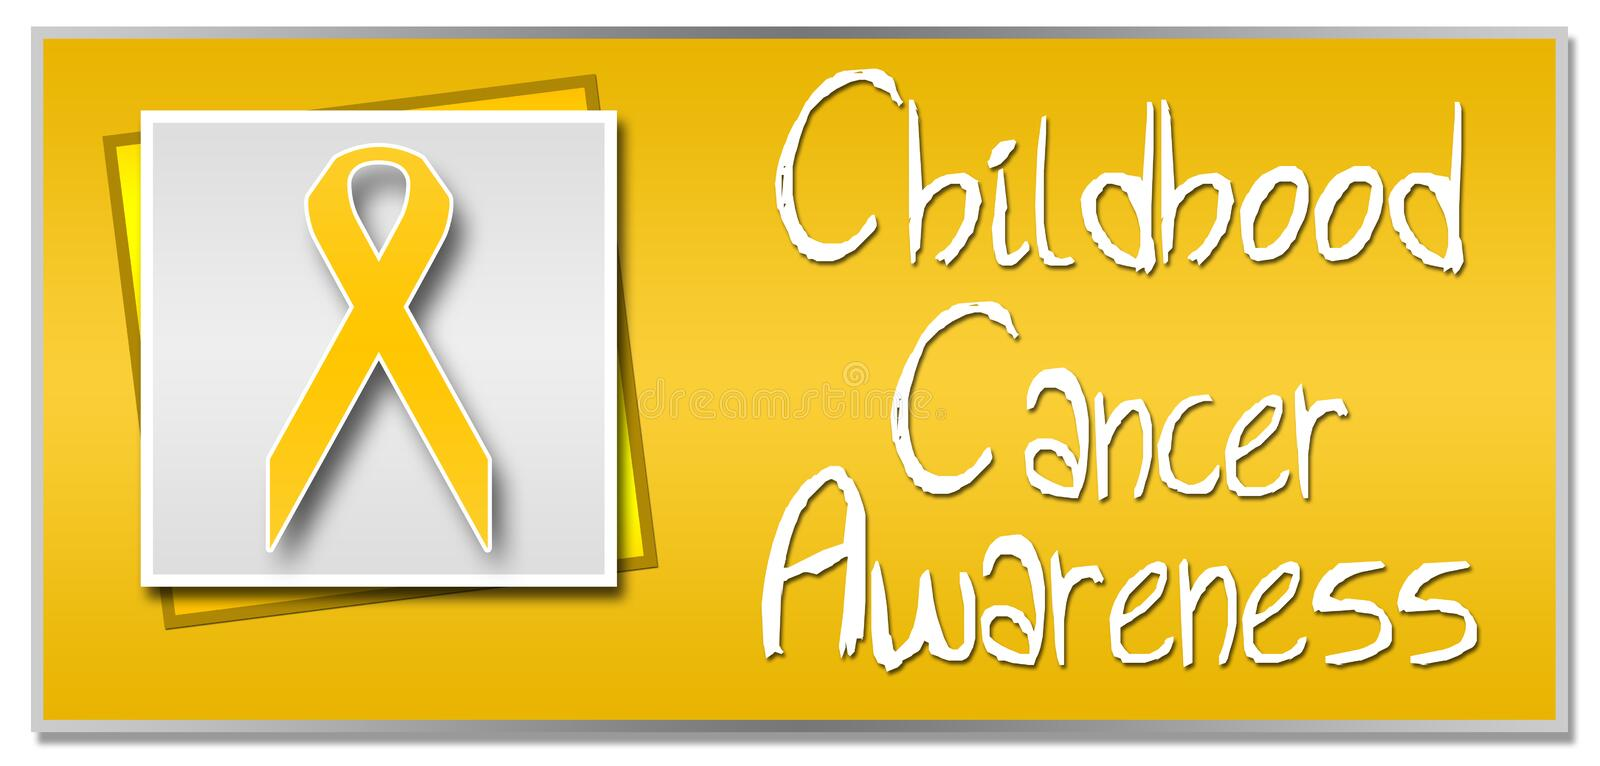 Childhood Cancer Awareness. Conceptual image for childhood cancer awareness with golden ribbon stock illustration